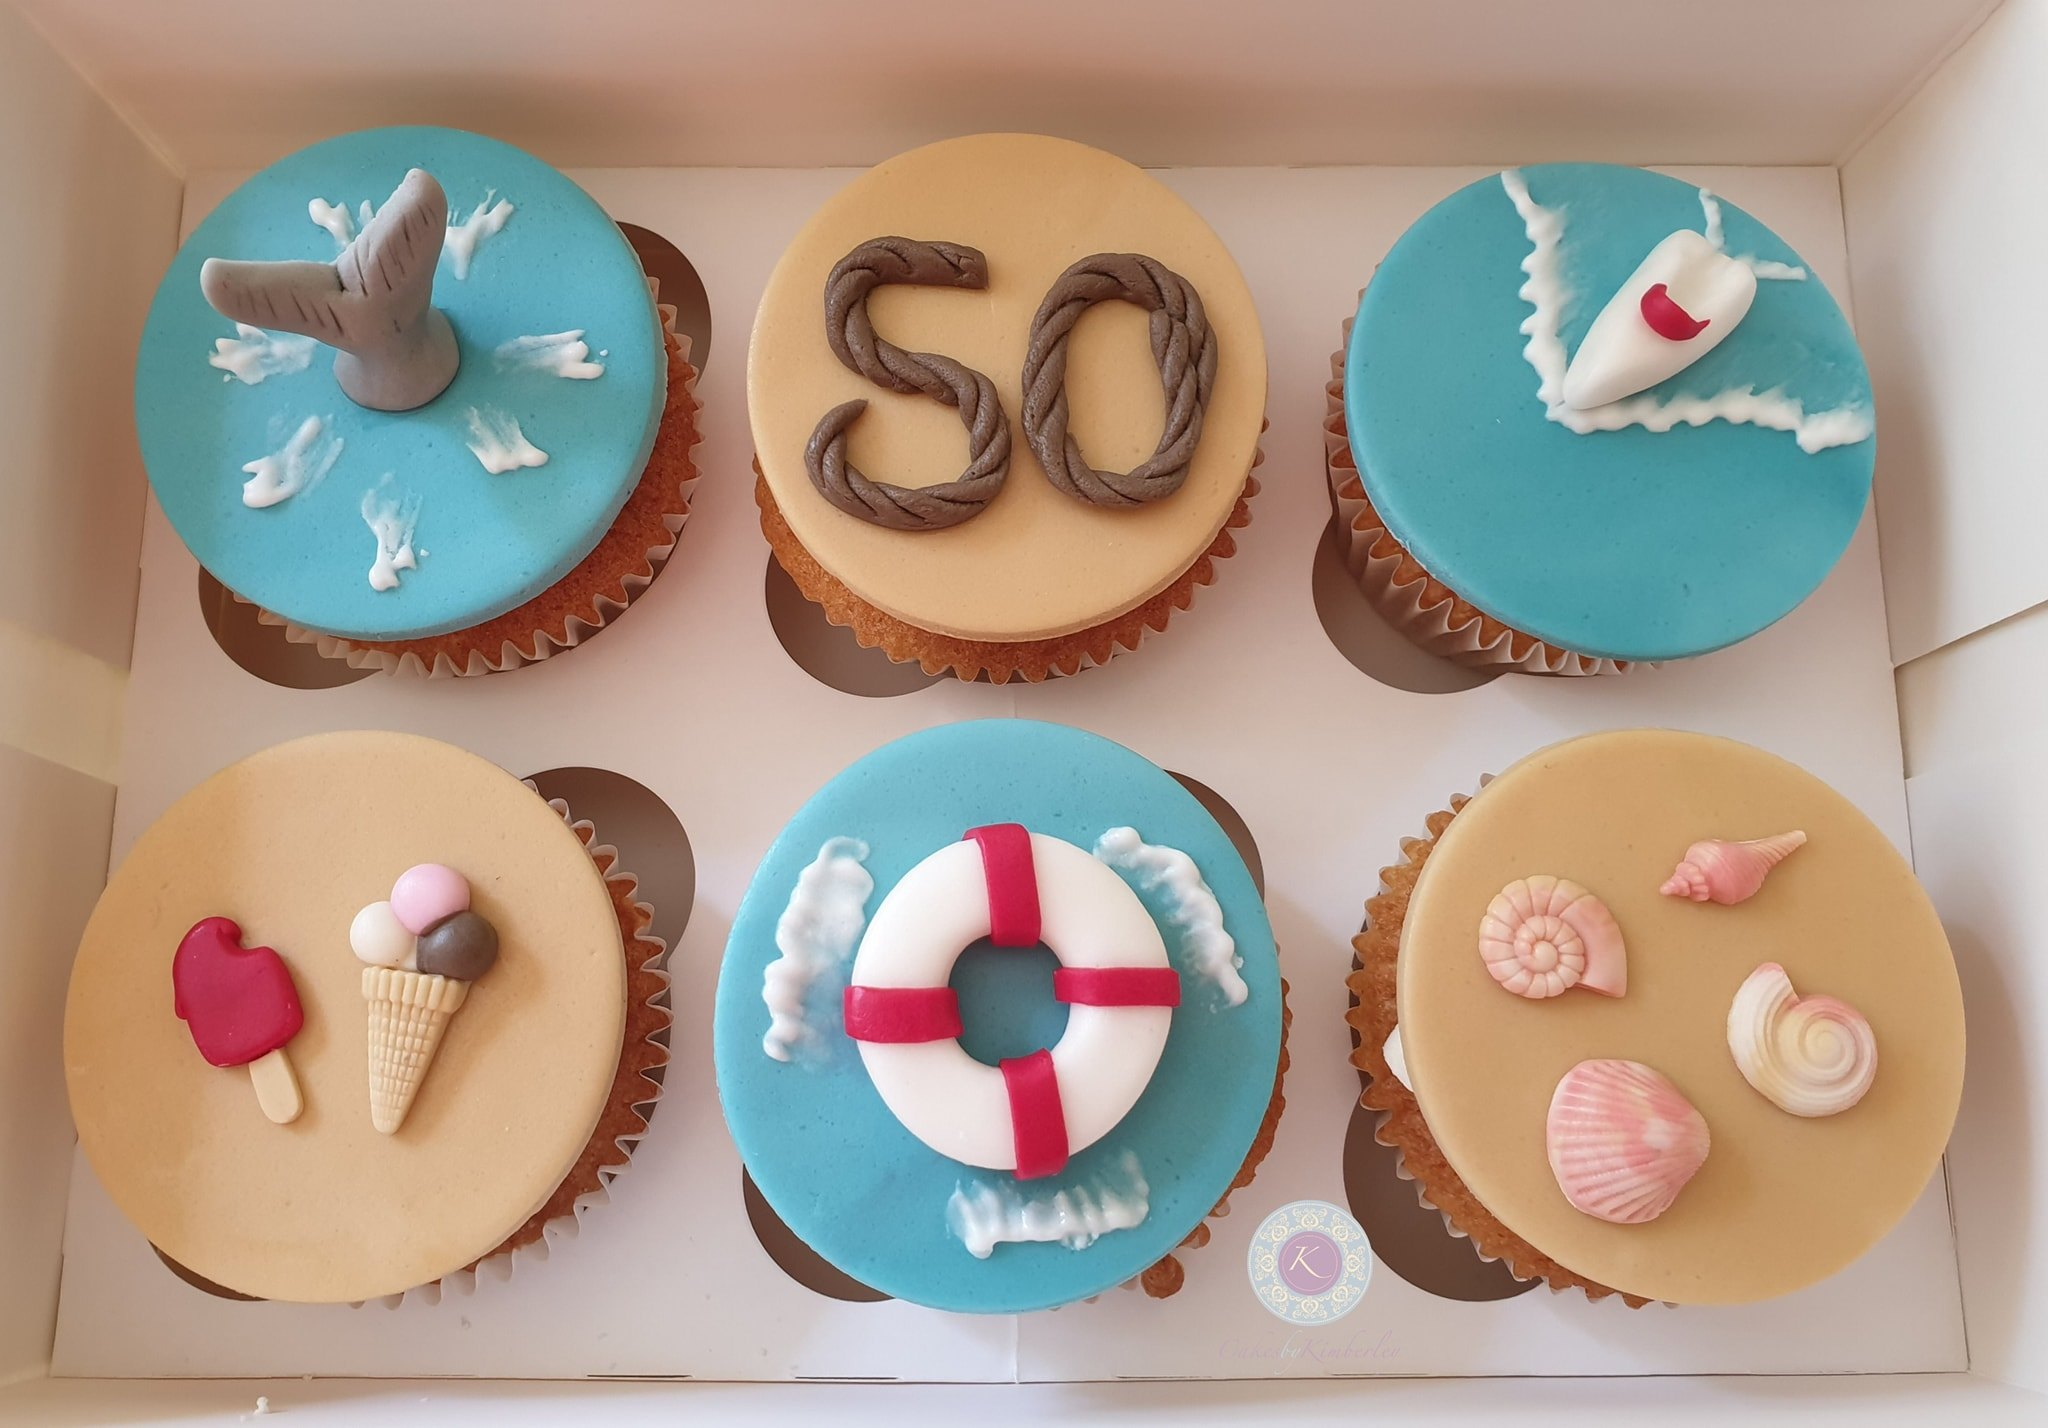 cupcakes - St Ives